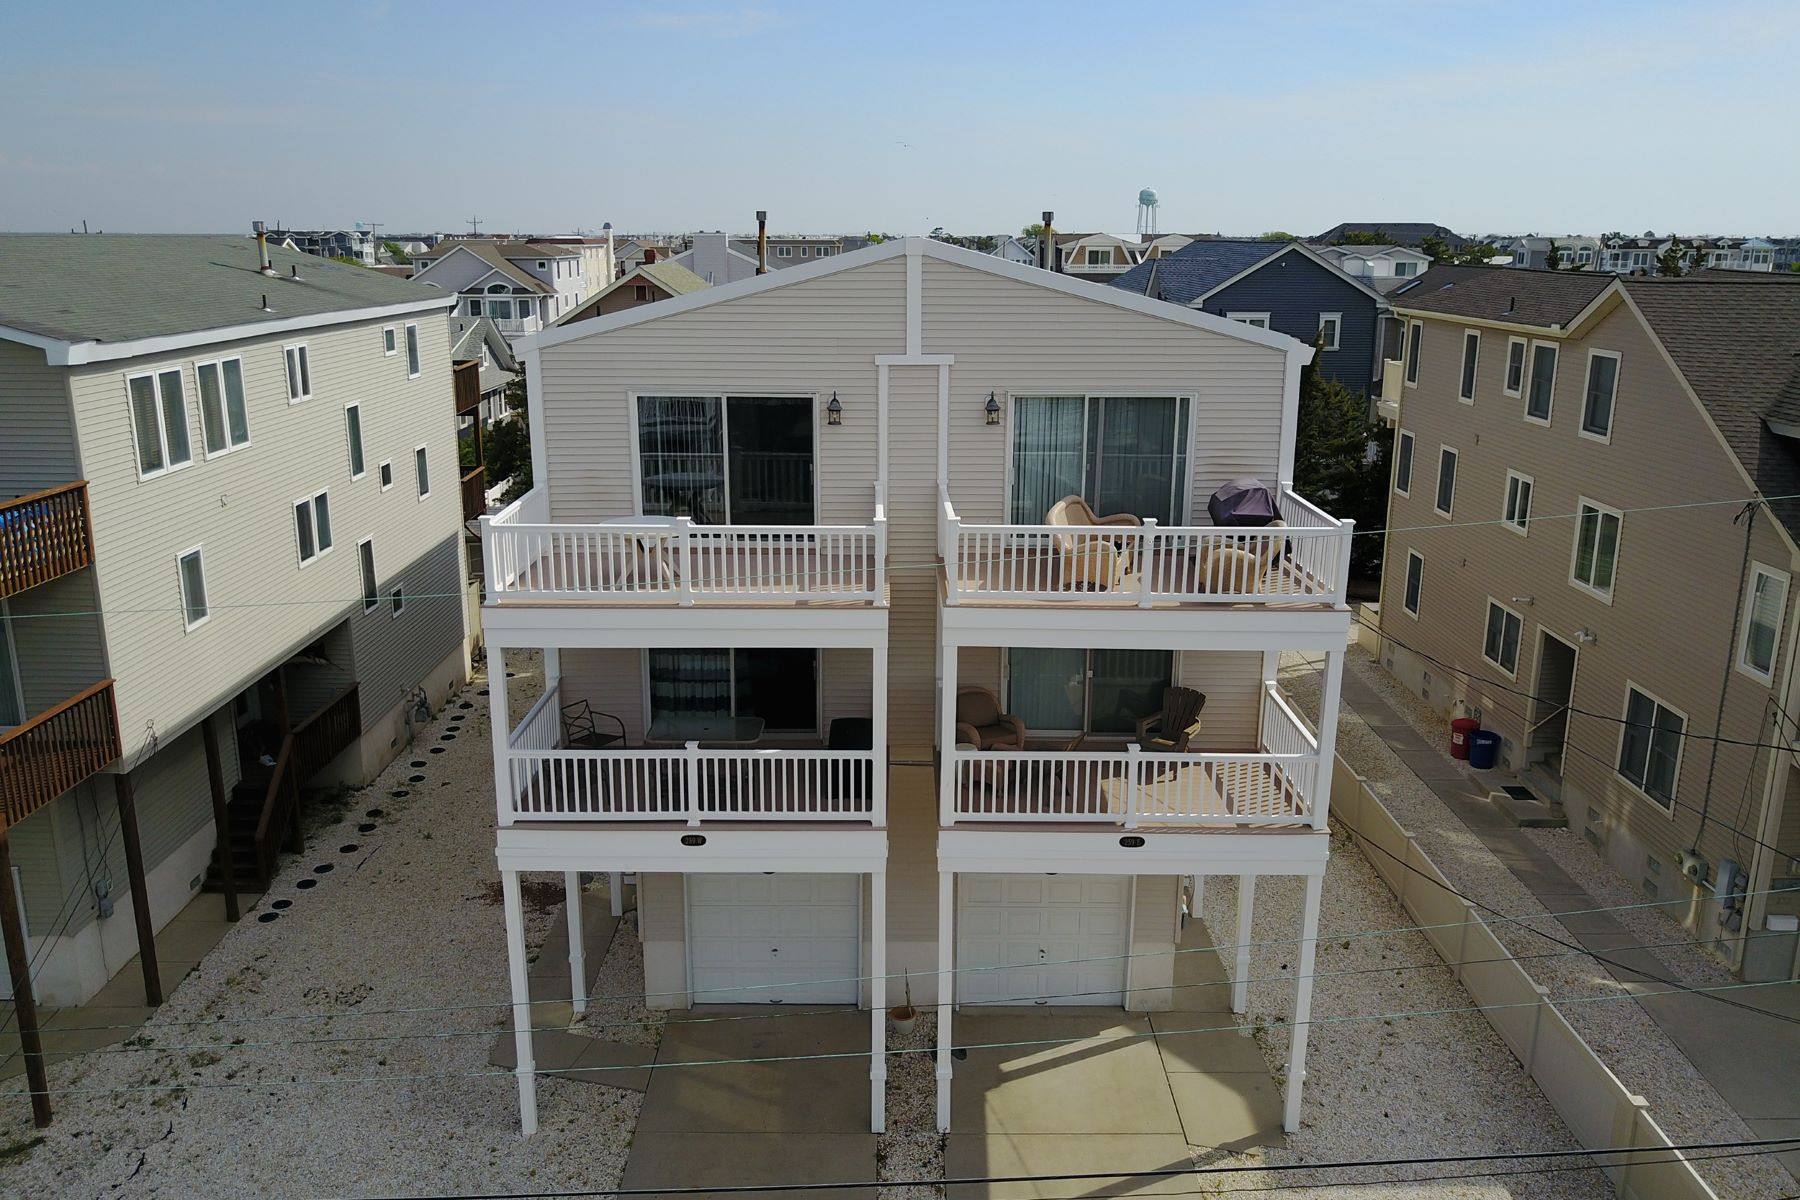 Townhouse for Sale at Downtown Beach Townhouse 259 24th Street Avalon, New Jersey 08202 United States